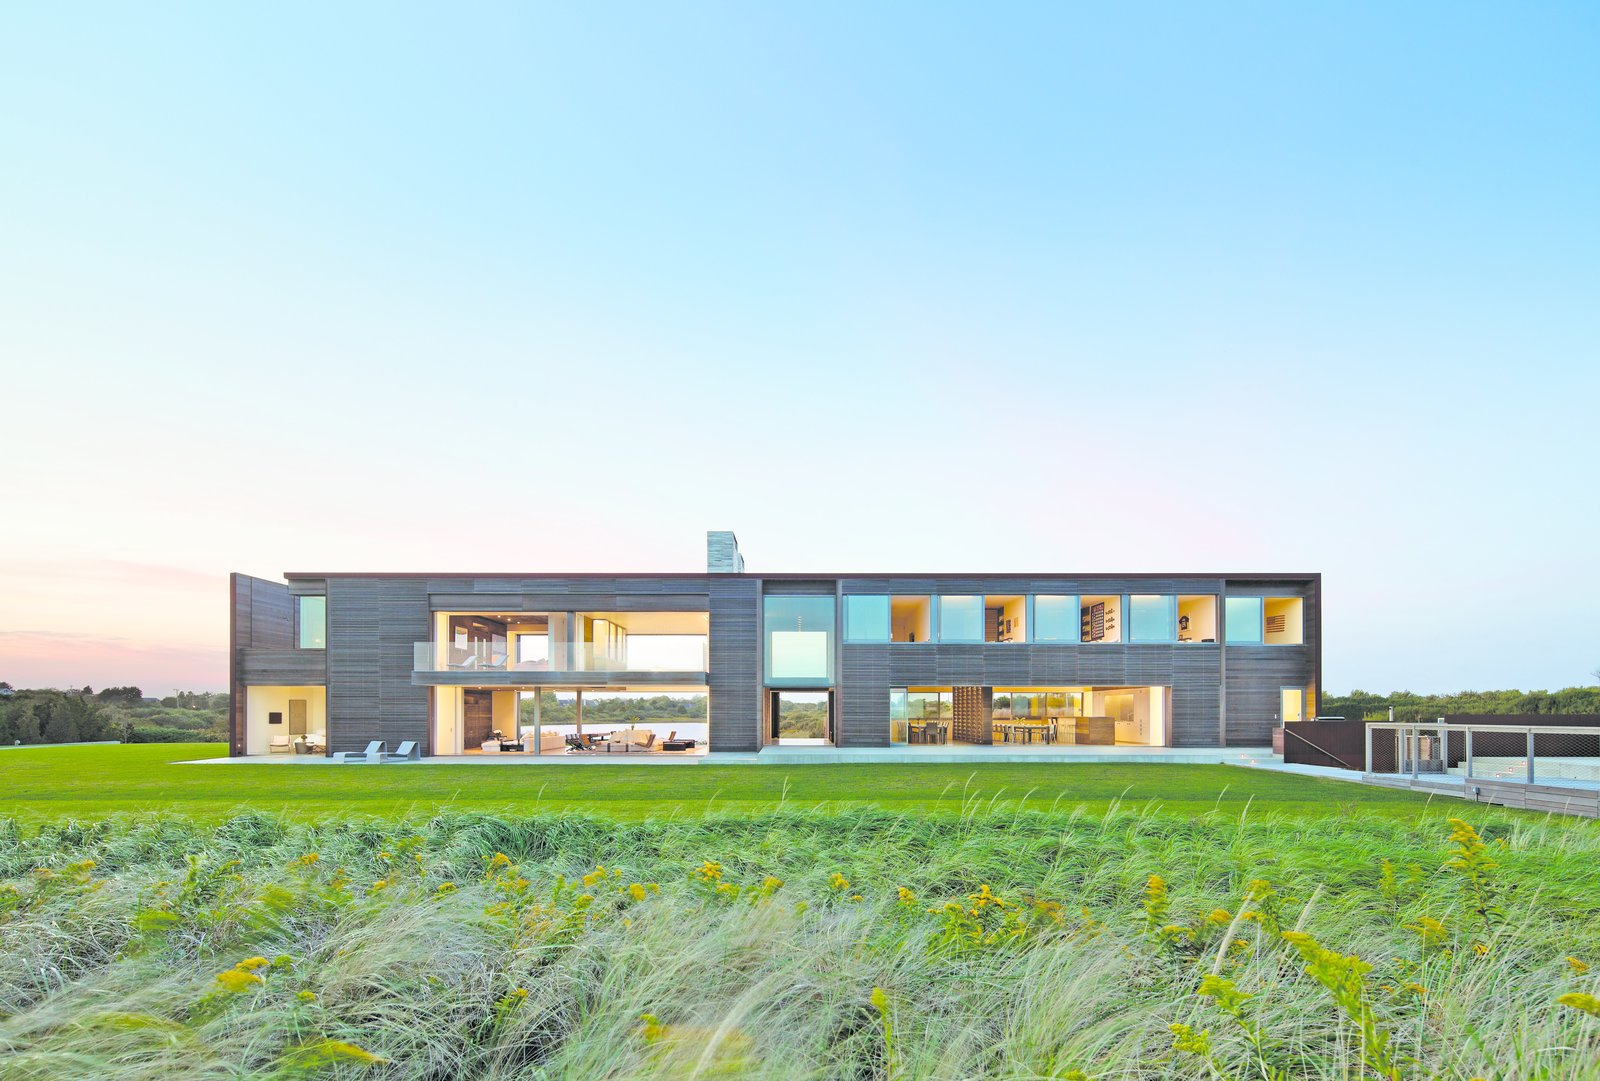 Tagged: Outdoor, Back Yard, Large Patio, Porch, Deck, Large Pool, and Grass. Sagaponack, NY by The Corcoran Group